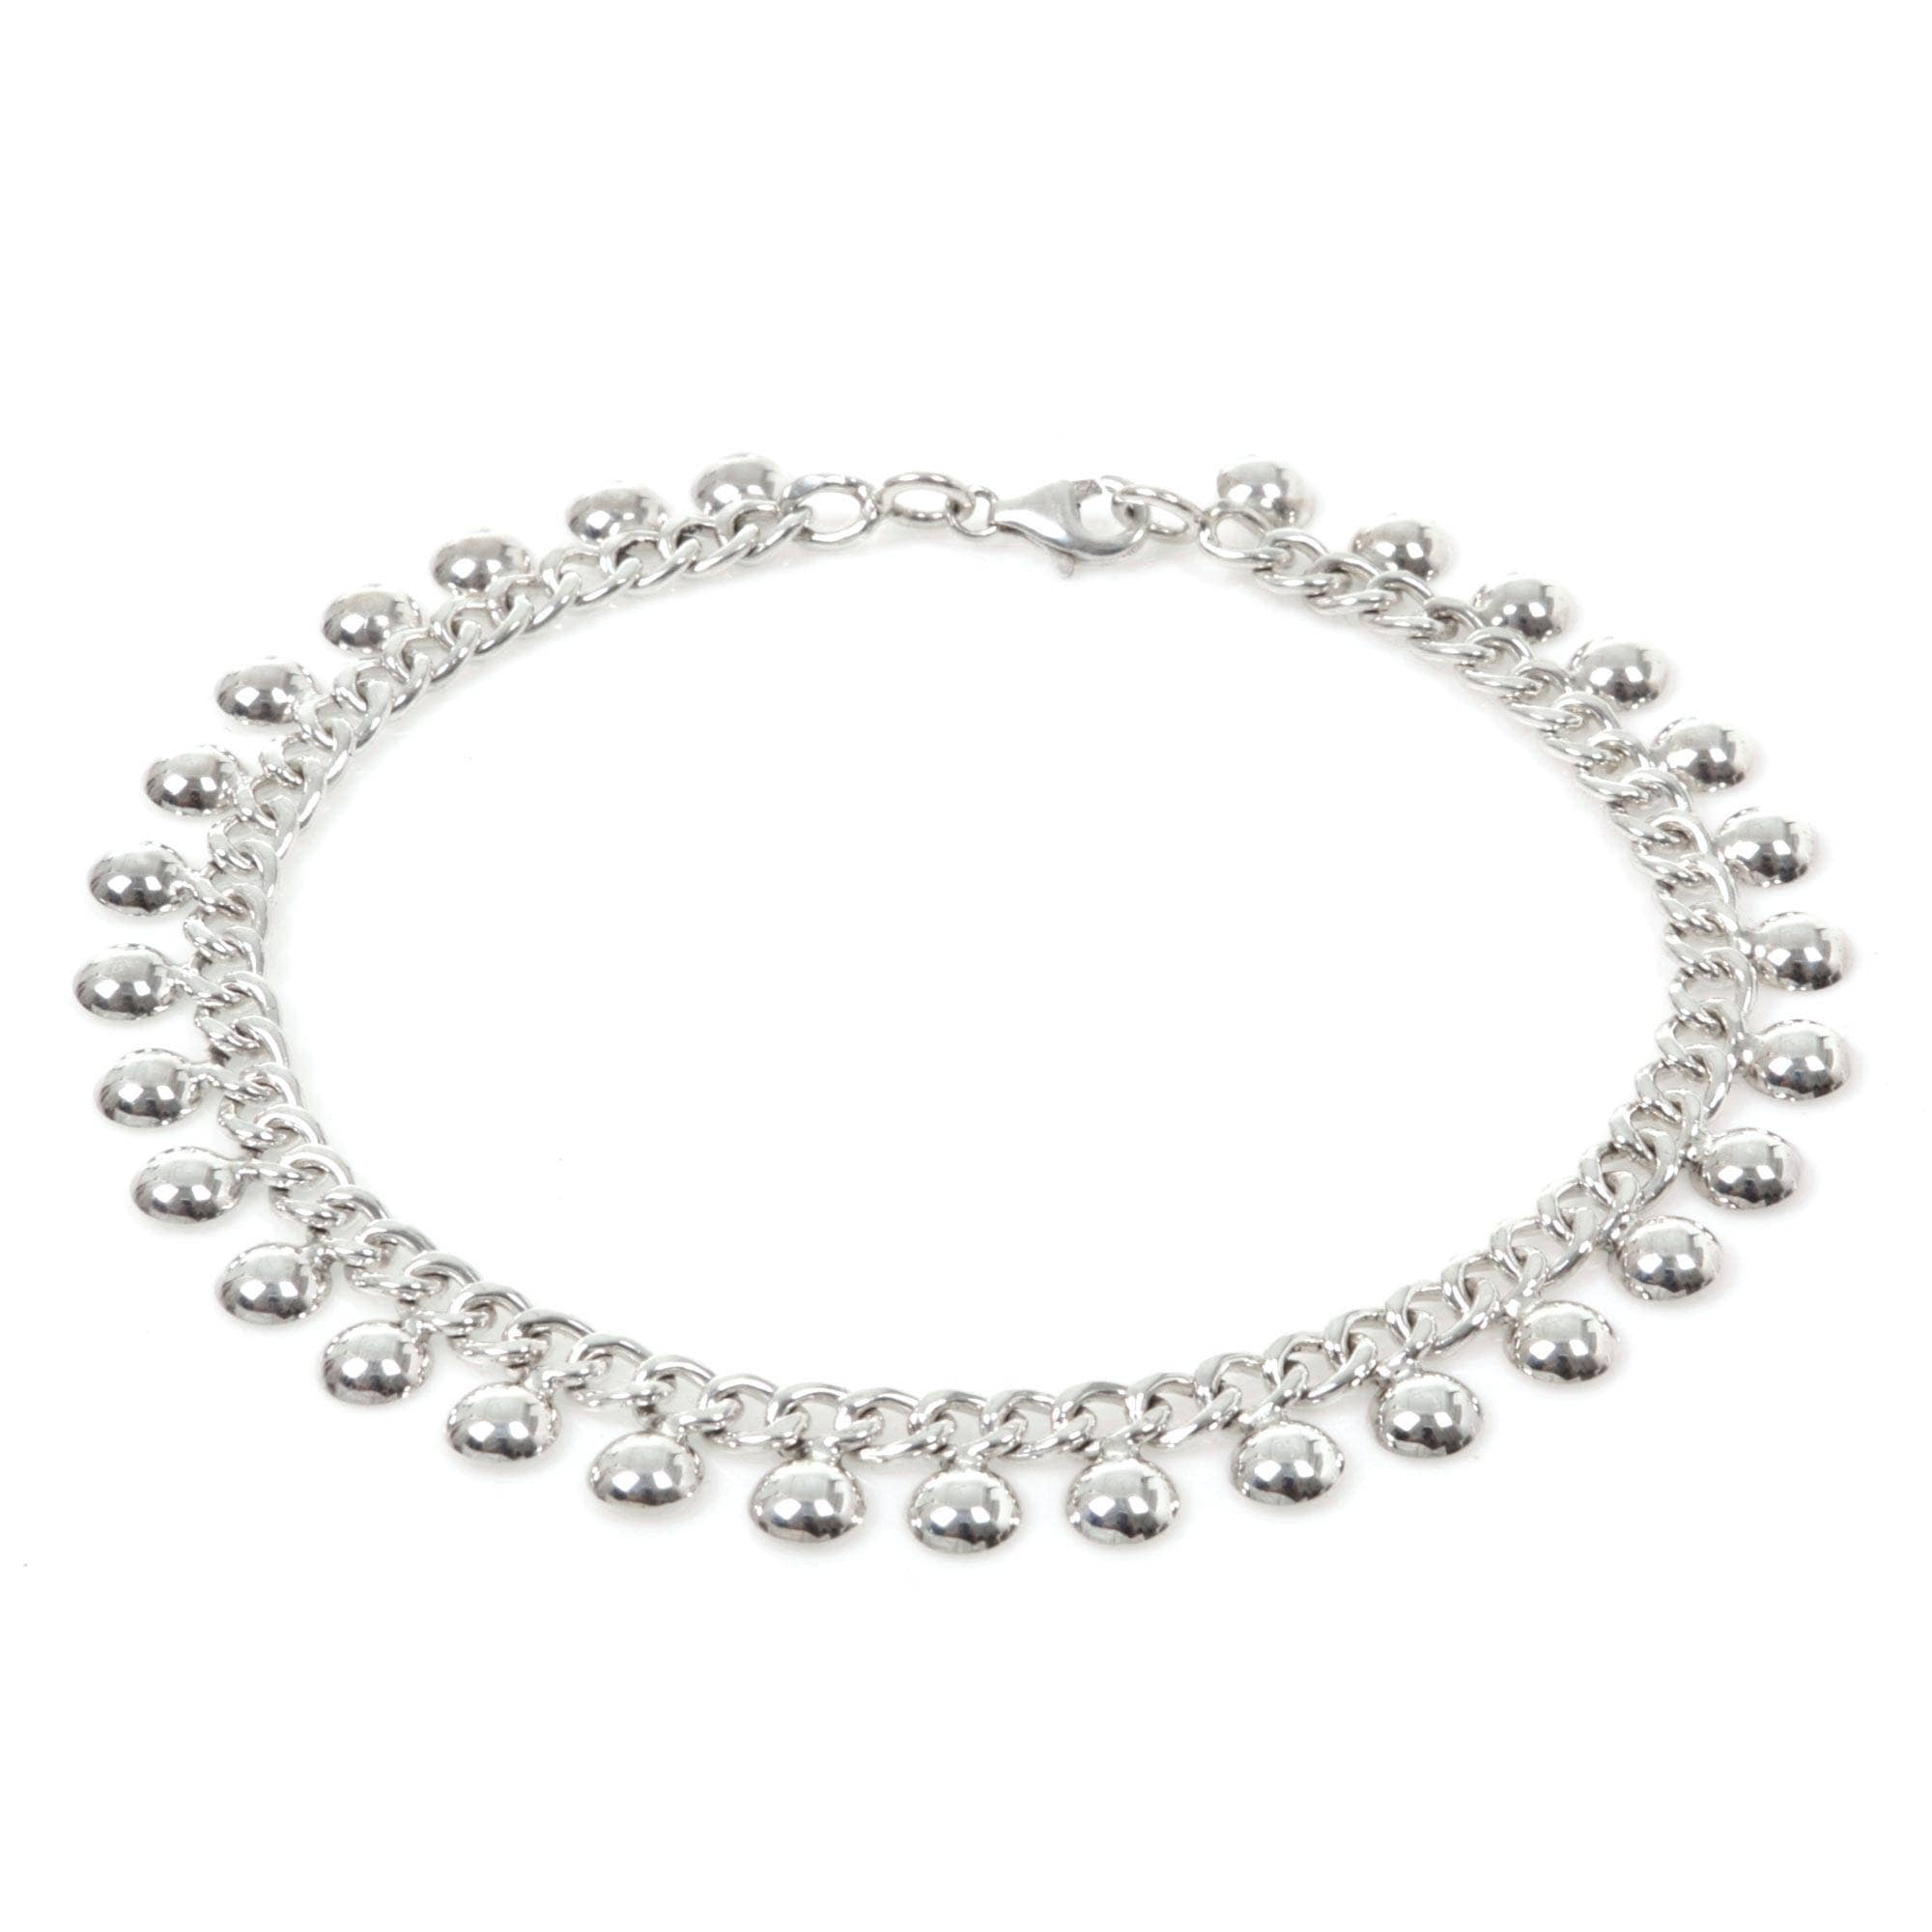 e2300194563 Palace Charms Lobster Claw Clasp Link Bracelet with Dangling Ball Charms  925 Sterling Silver Ankelet